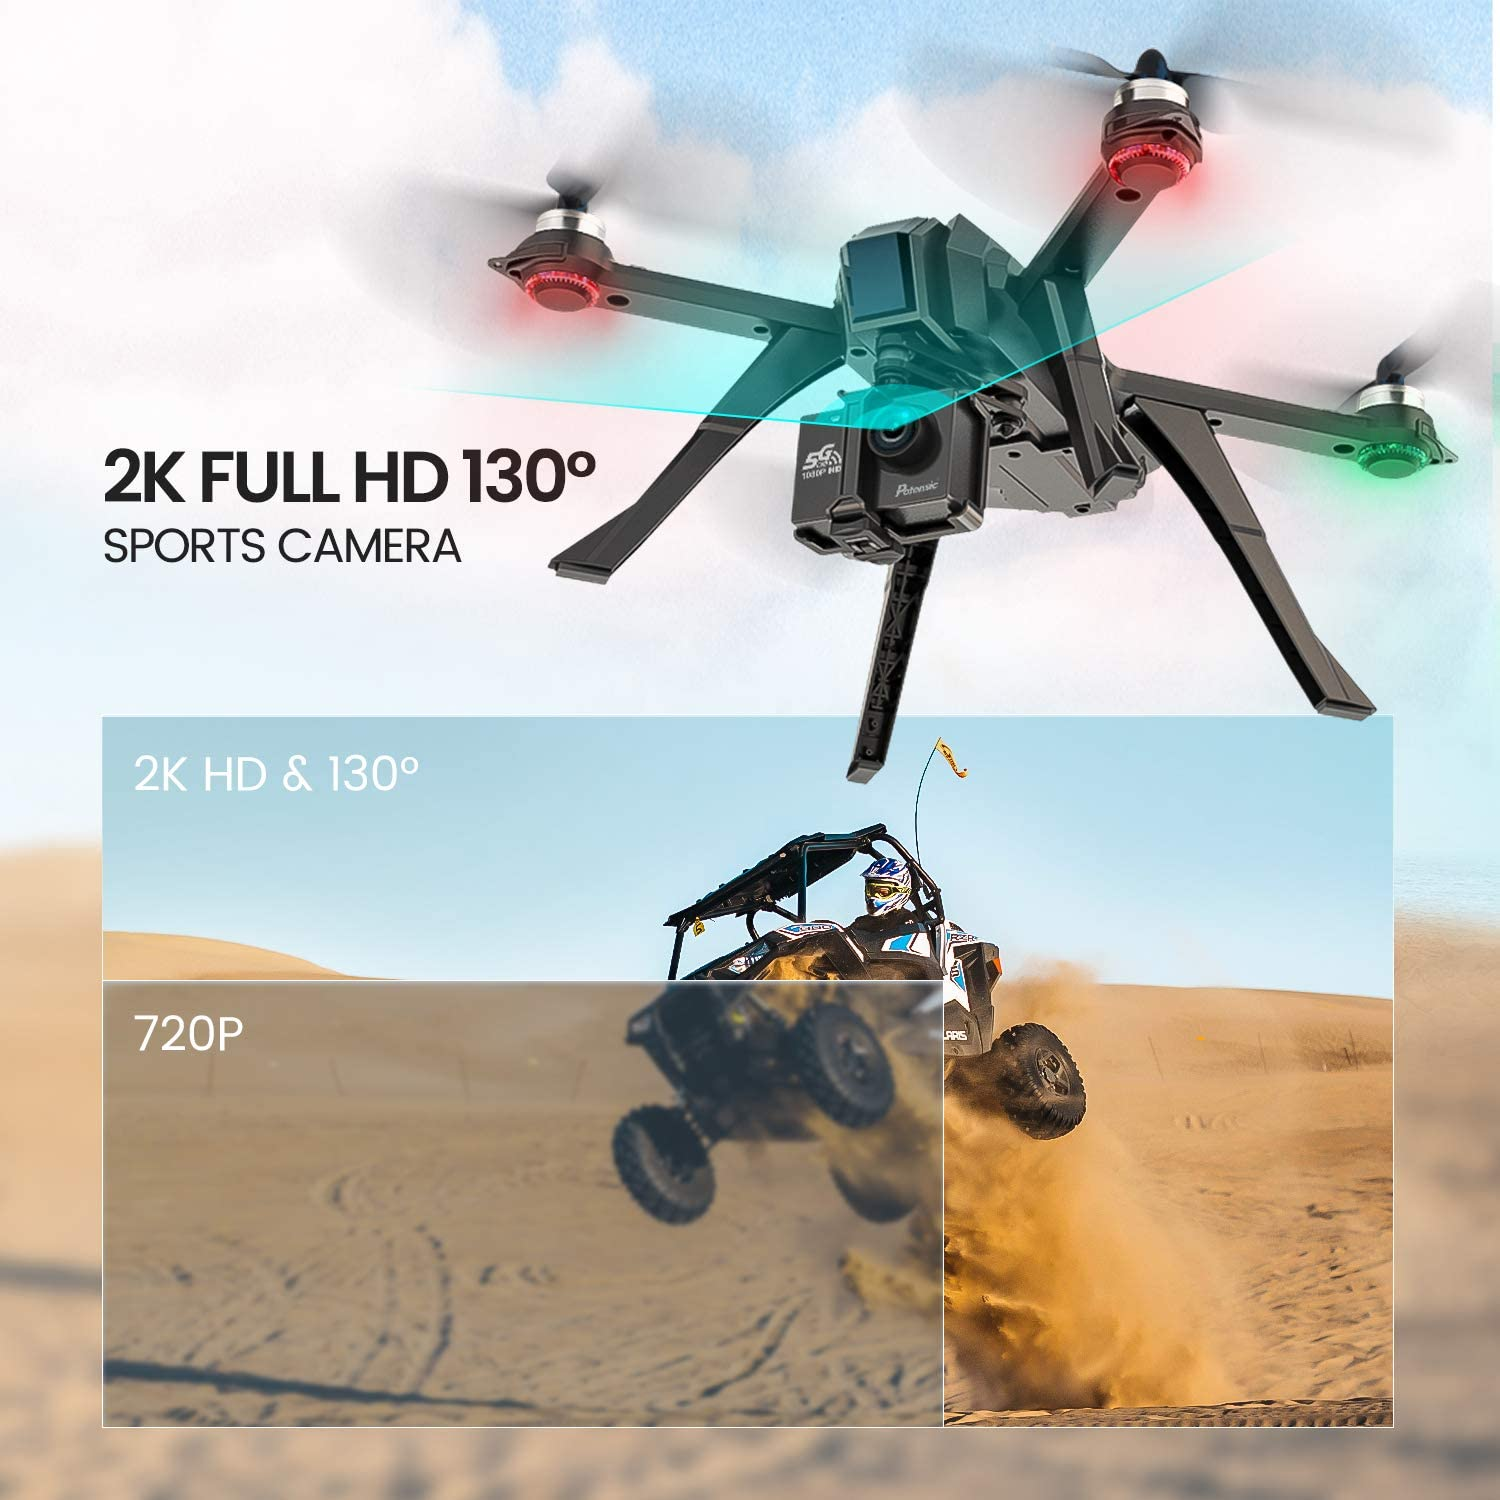 Potensic D85 is at #7 for best drones under 300 dollars